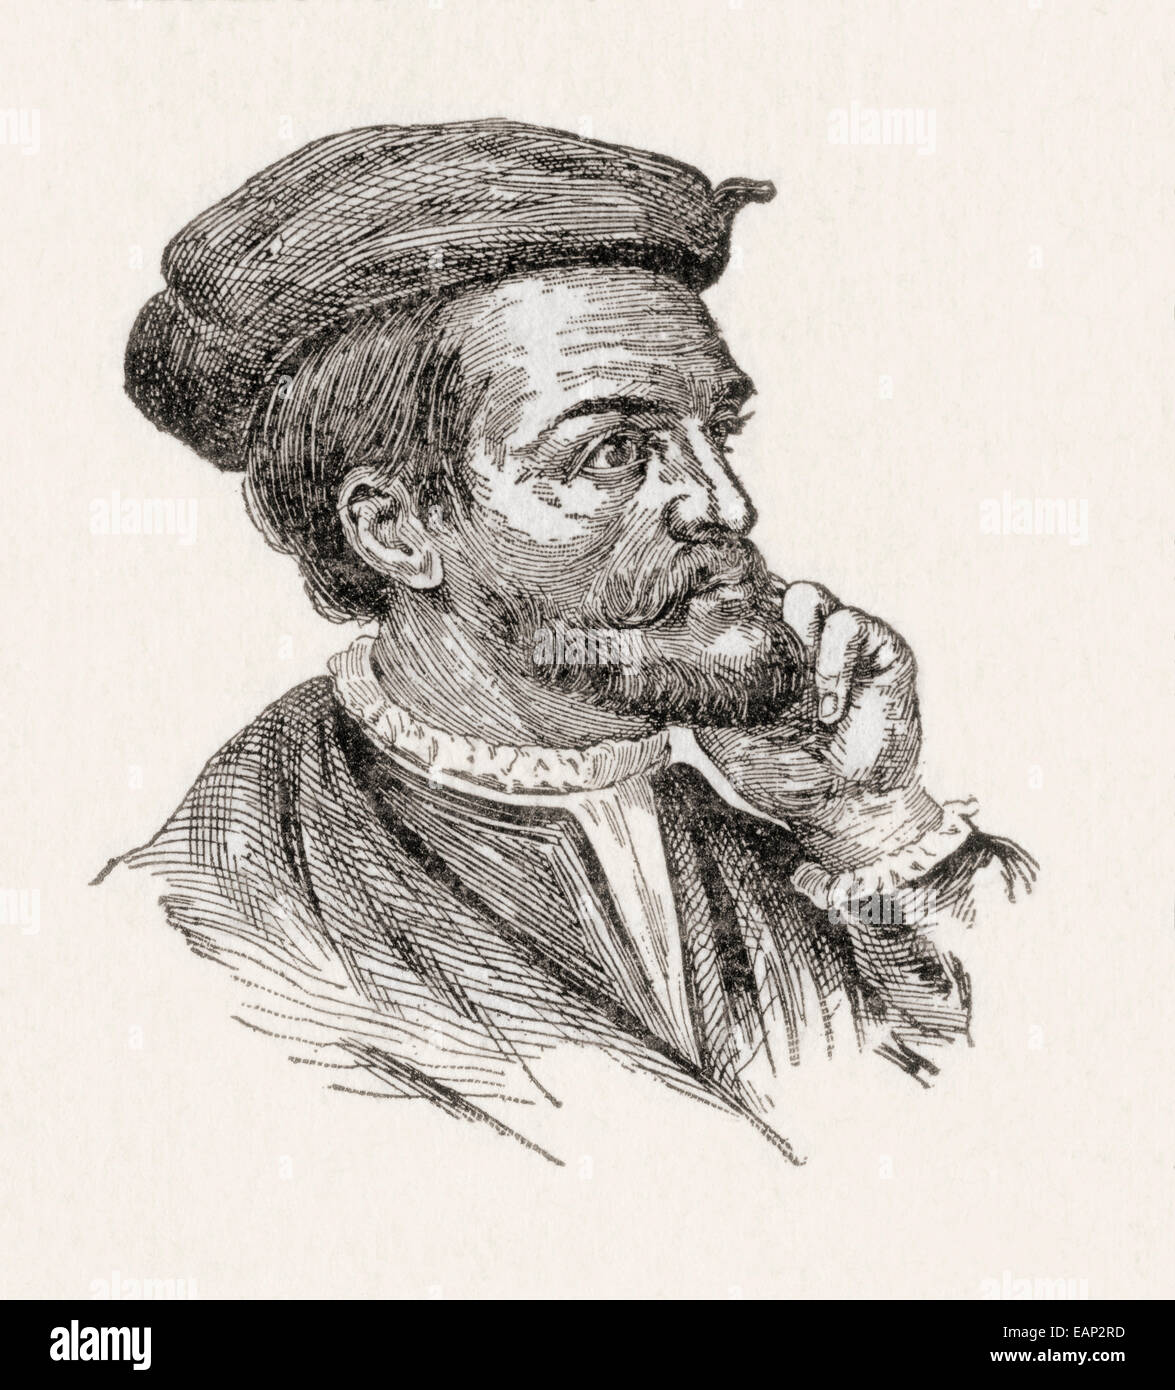 Jacques Cartier, 1491 – 1557.  French navigator and explorer. - Stock Image